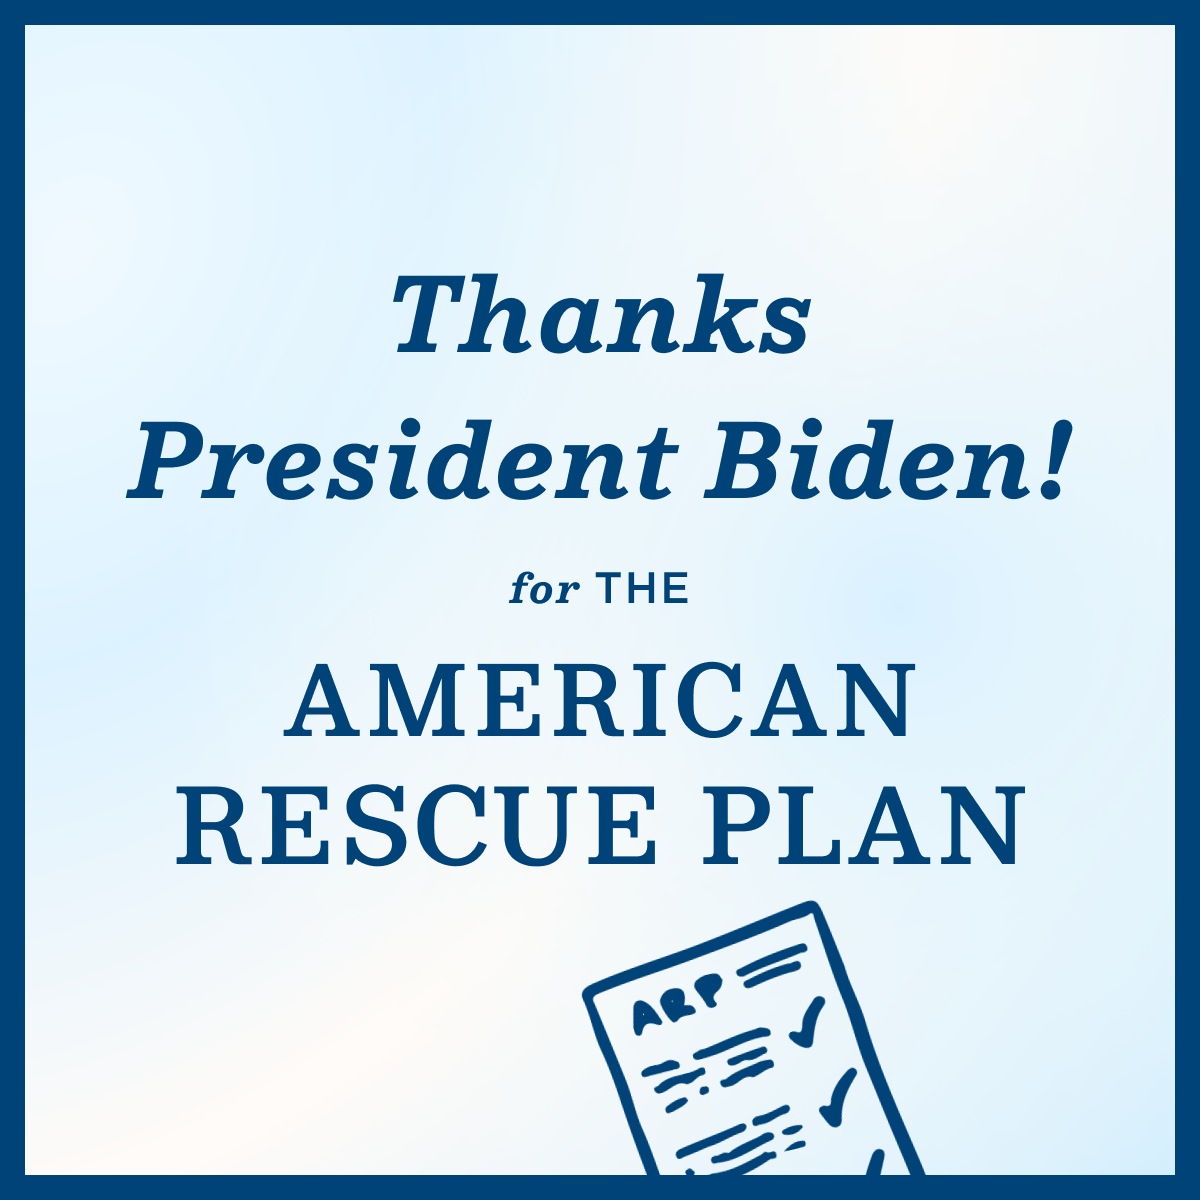 """A light blue graphic that reads """"Thanks President Biden for the American Rescue Plan!"""""""